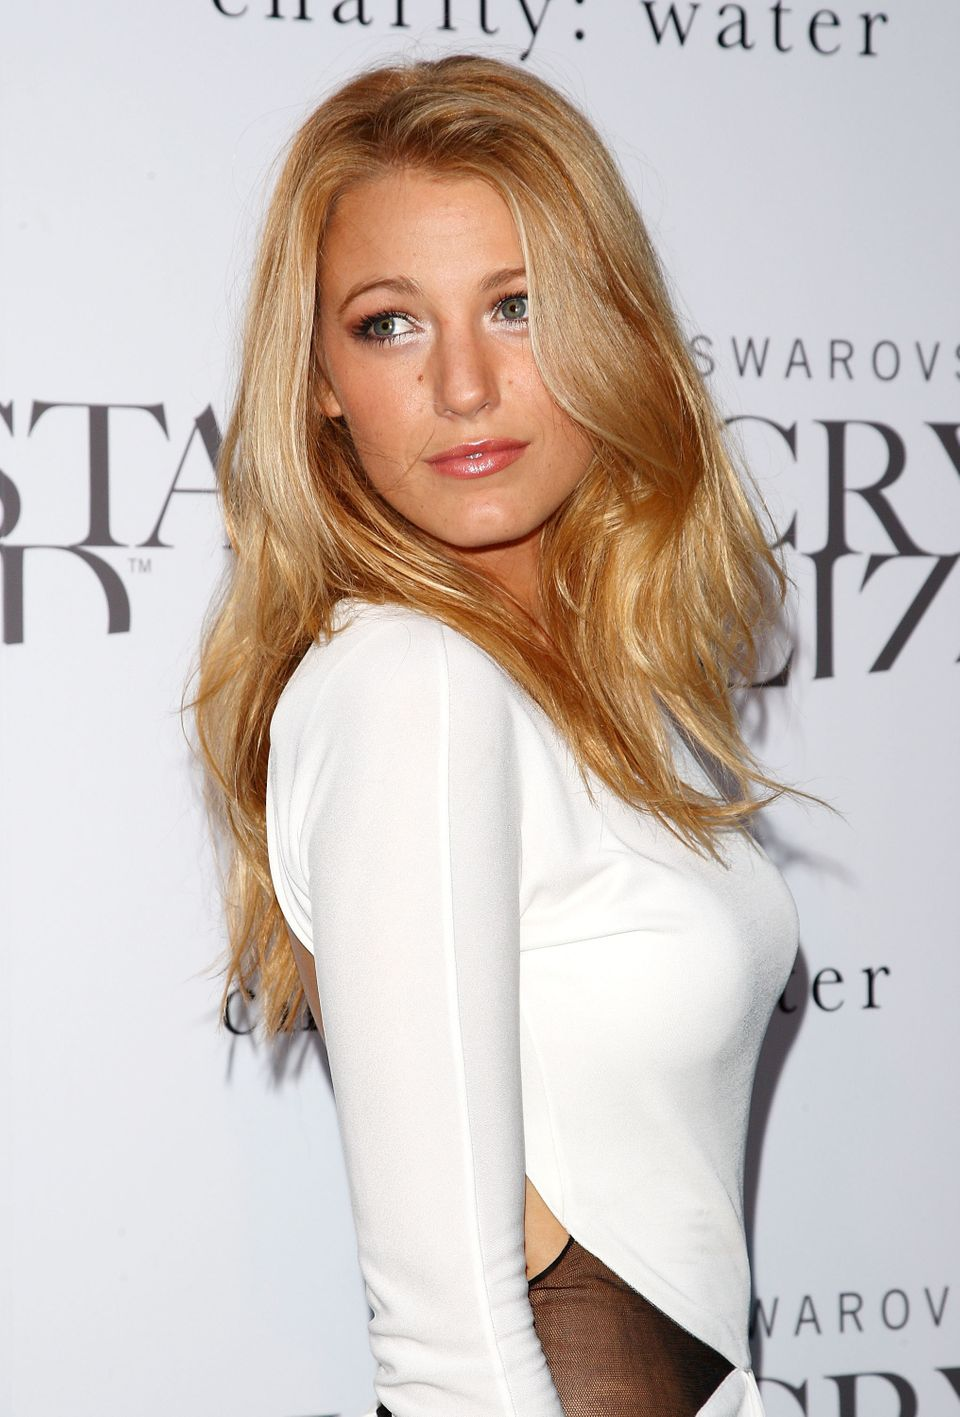 NEW YORK - JUNE 25:  Actress Blake Lively attends the Swarovski Crystallized Concept store grand opening at Swarovski Crystal